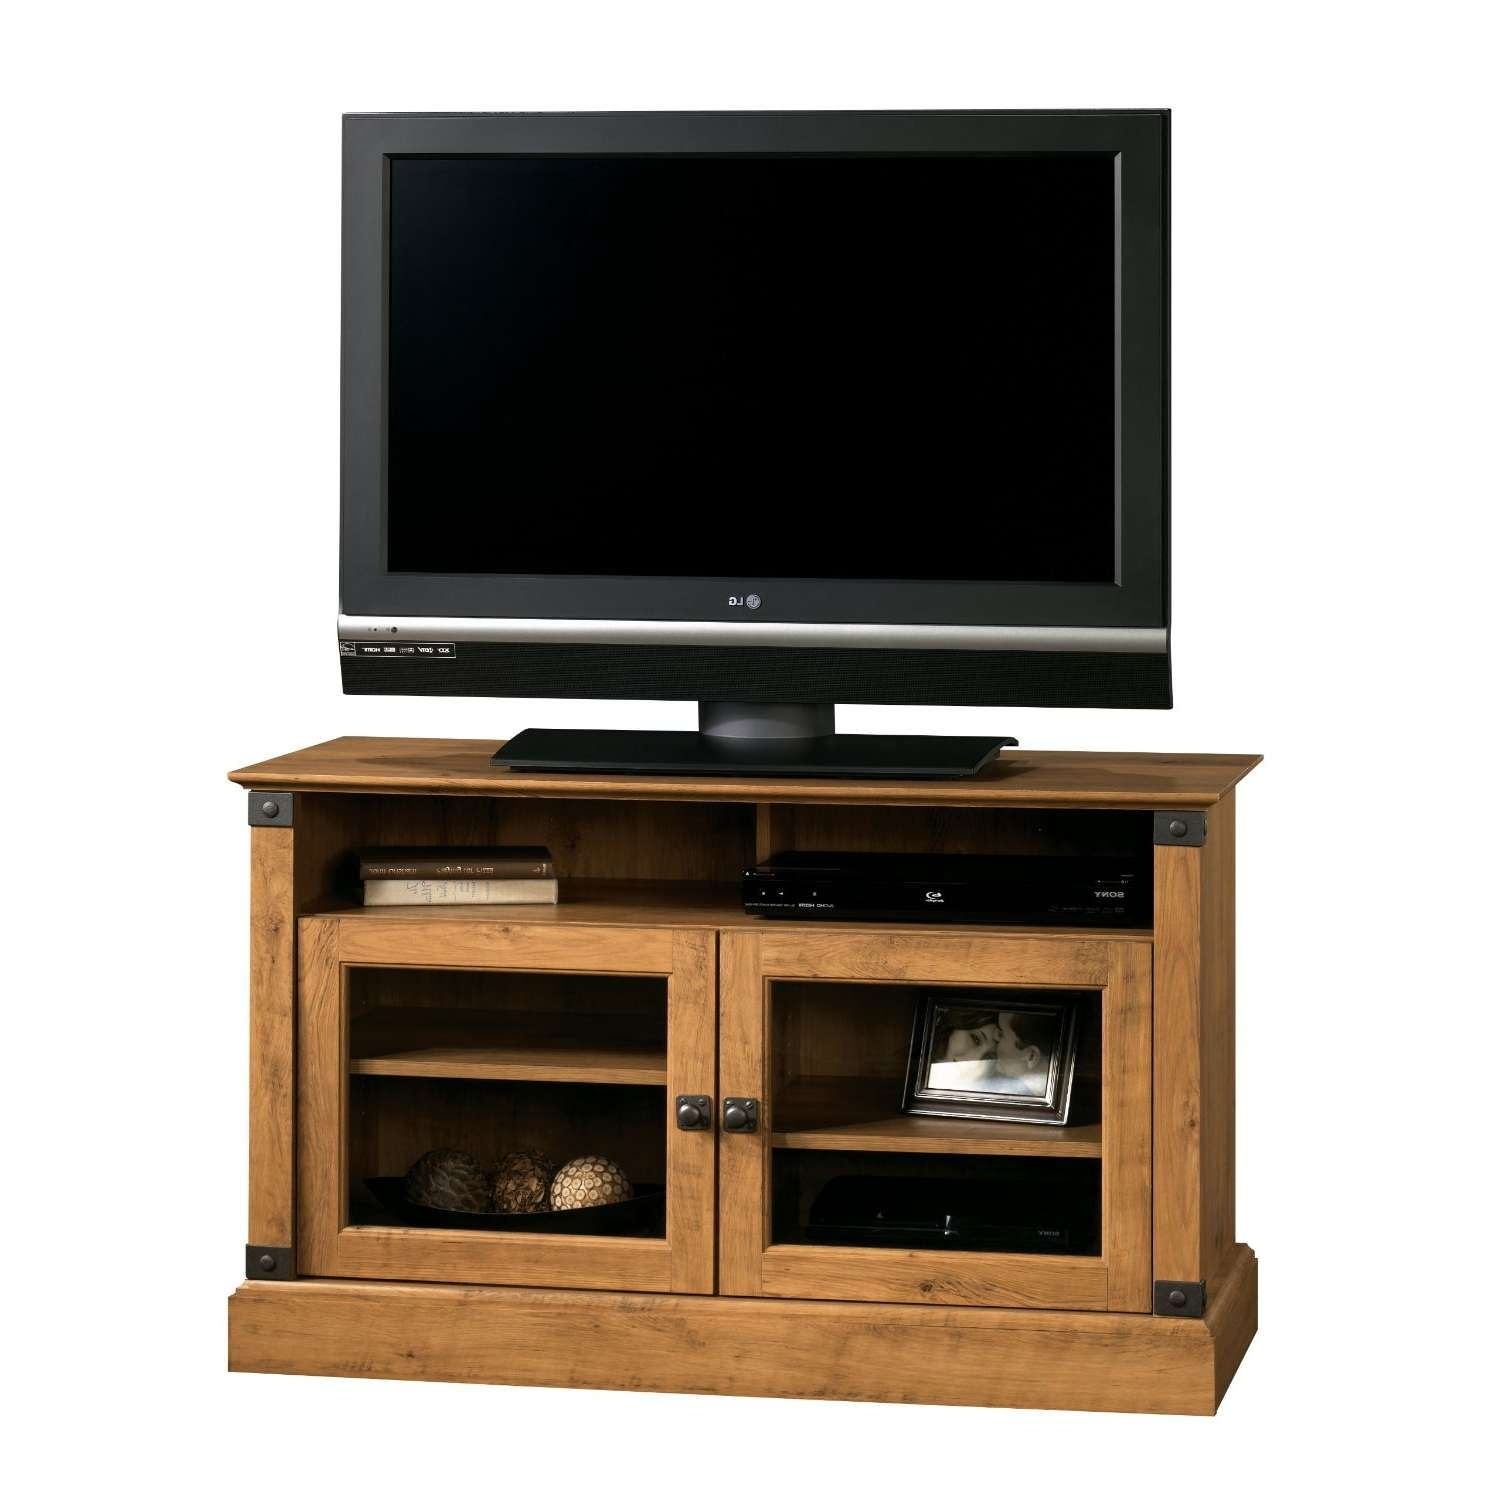 Furniture: Reclaimed Wood Tv Stand With Two Drawers And Shelves Throughout Wooden Tv Cabinets (View 6 of 20)